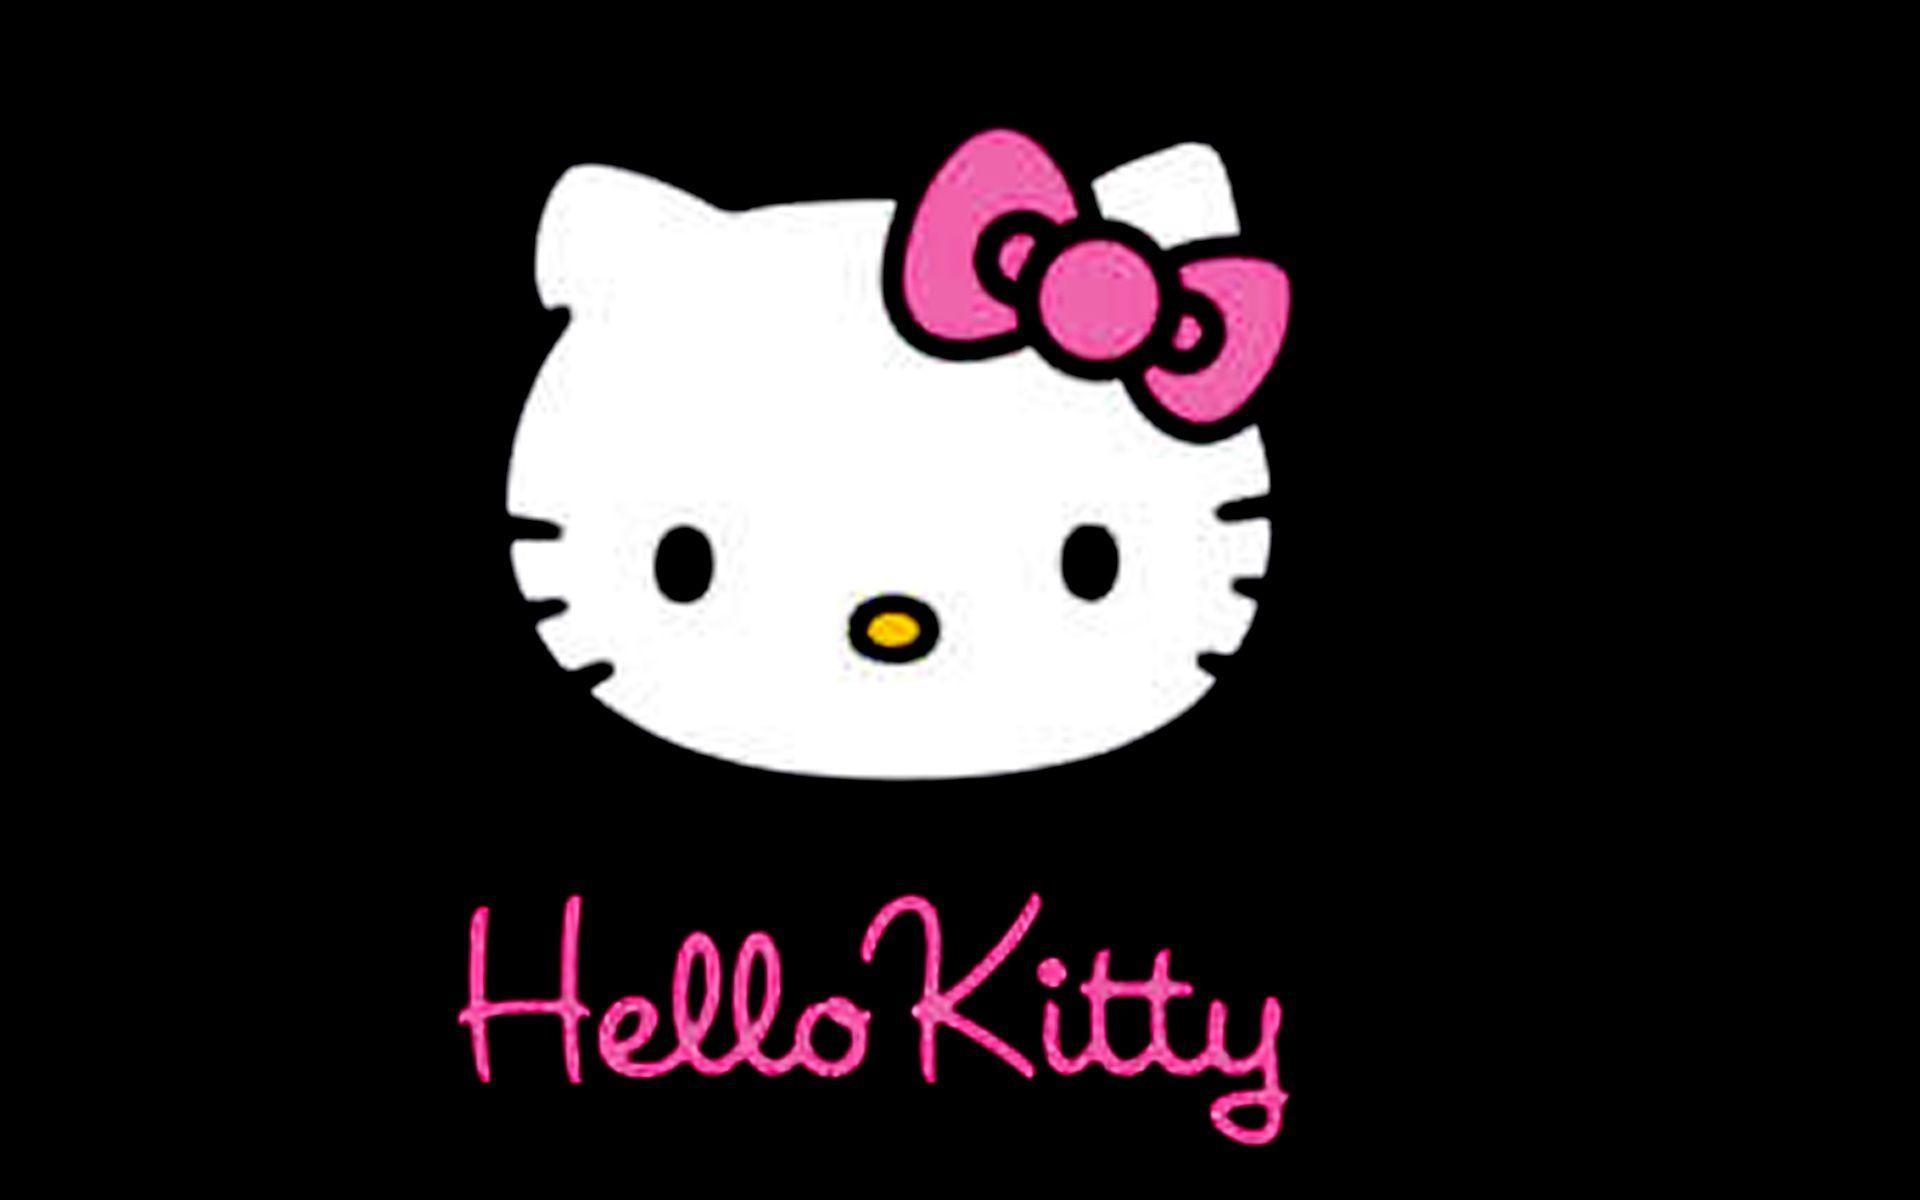 1920x1200 Wallpapers For Hello Kitty Wallpaper Hd Android